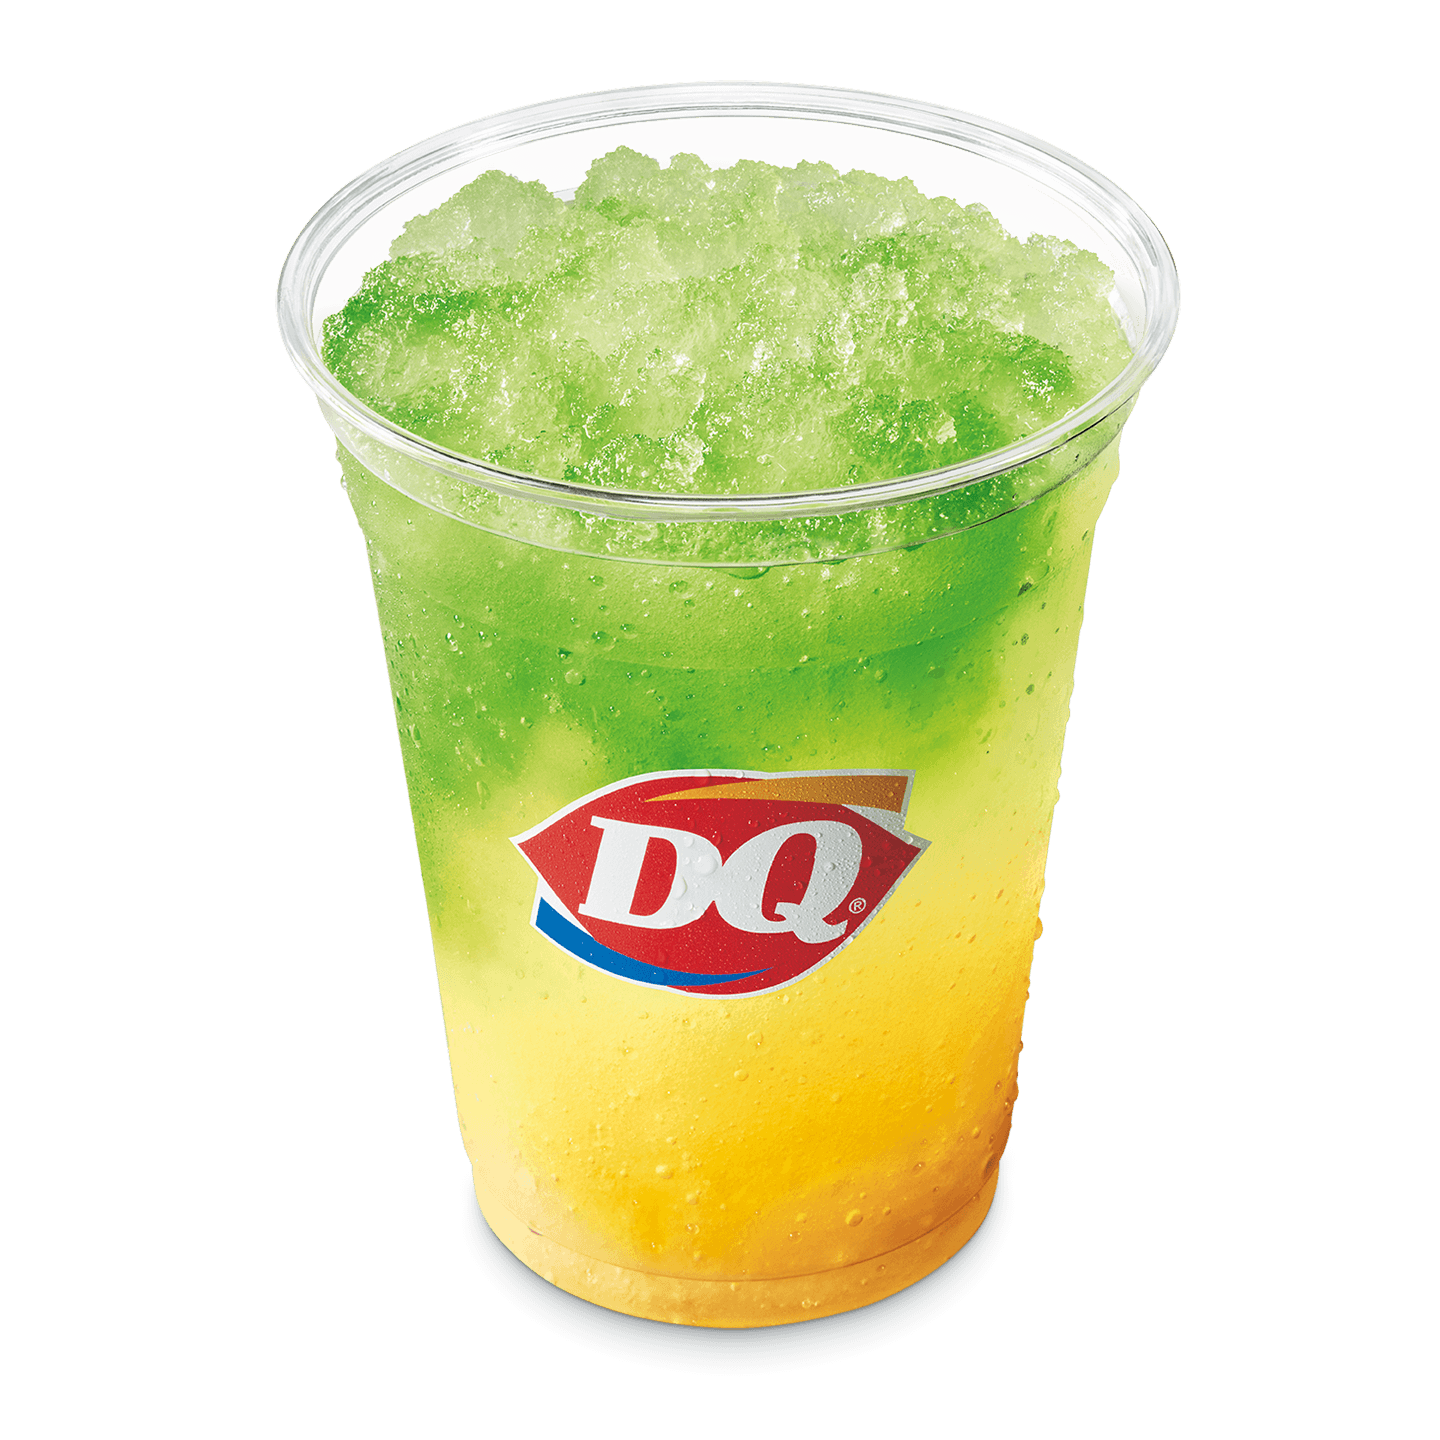 DQ Tropical Lemonade Twisty Misty